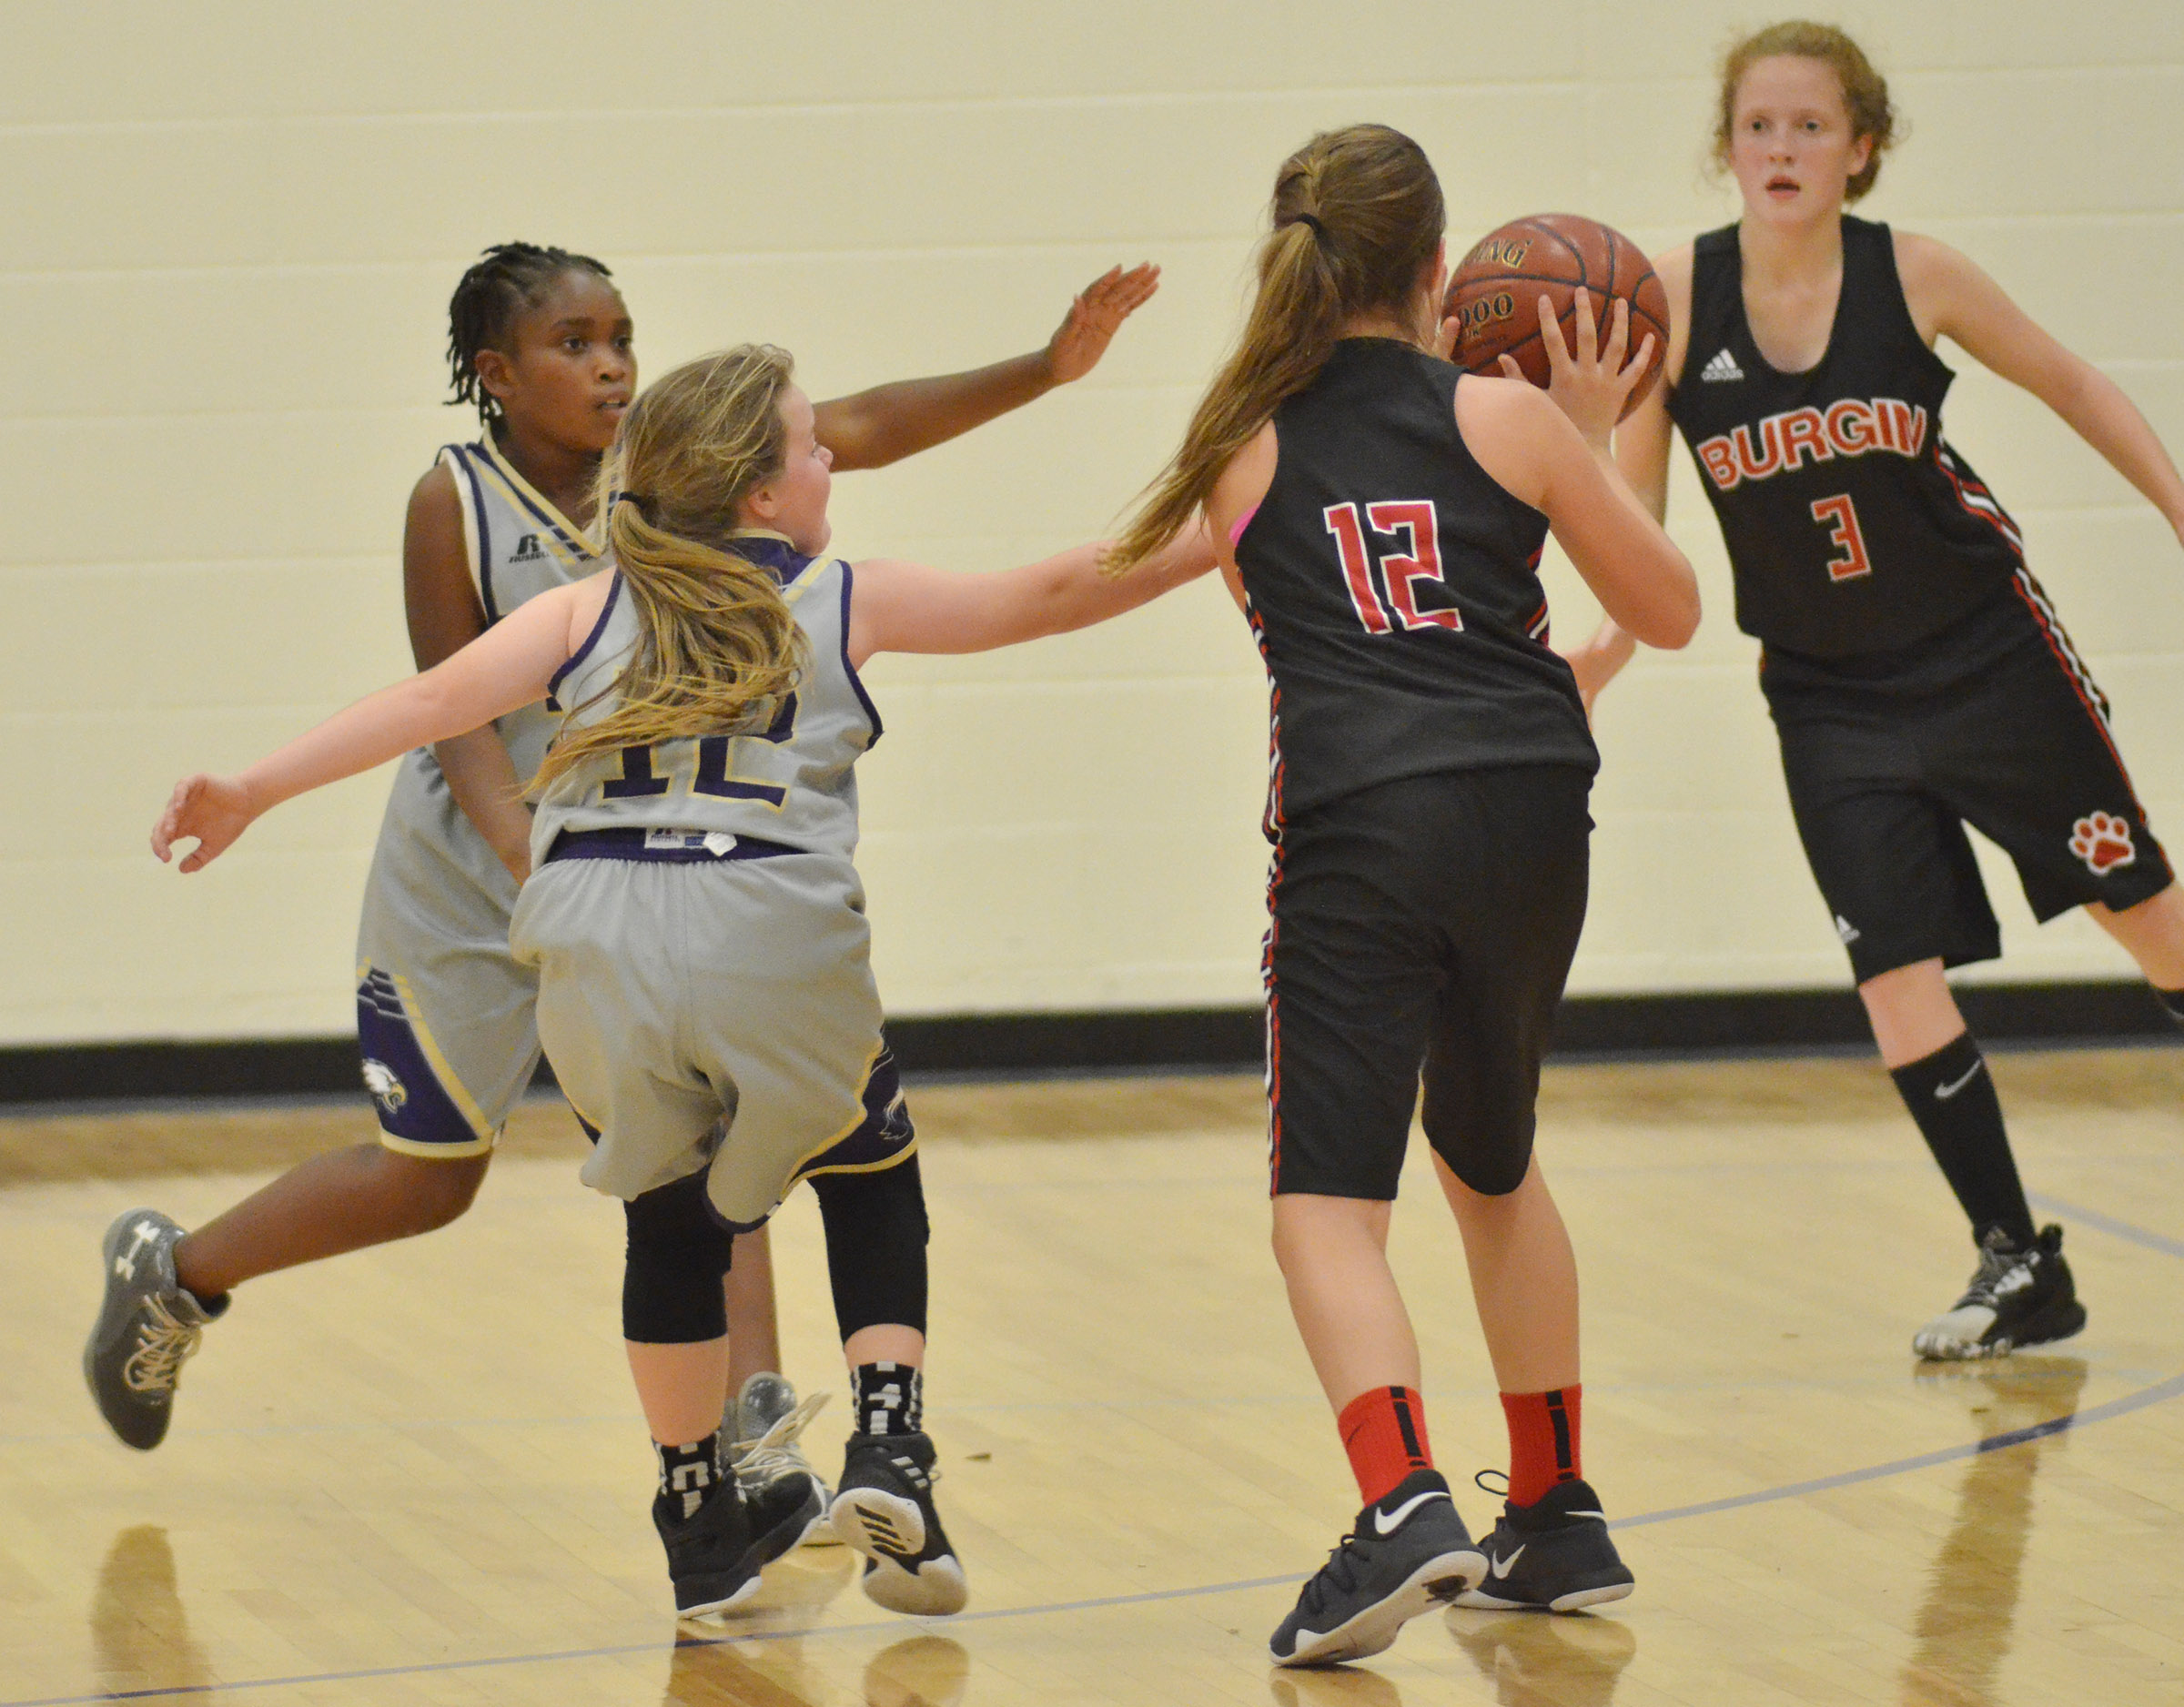 Campbellsville Elementary School fifth-graders Ta'Zaria Owens, at left, and Miley Hash play defense.